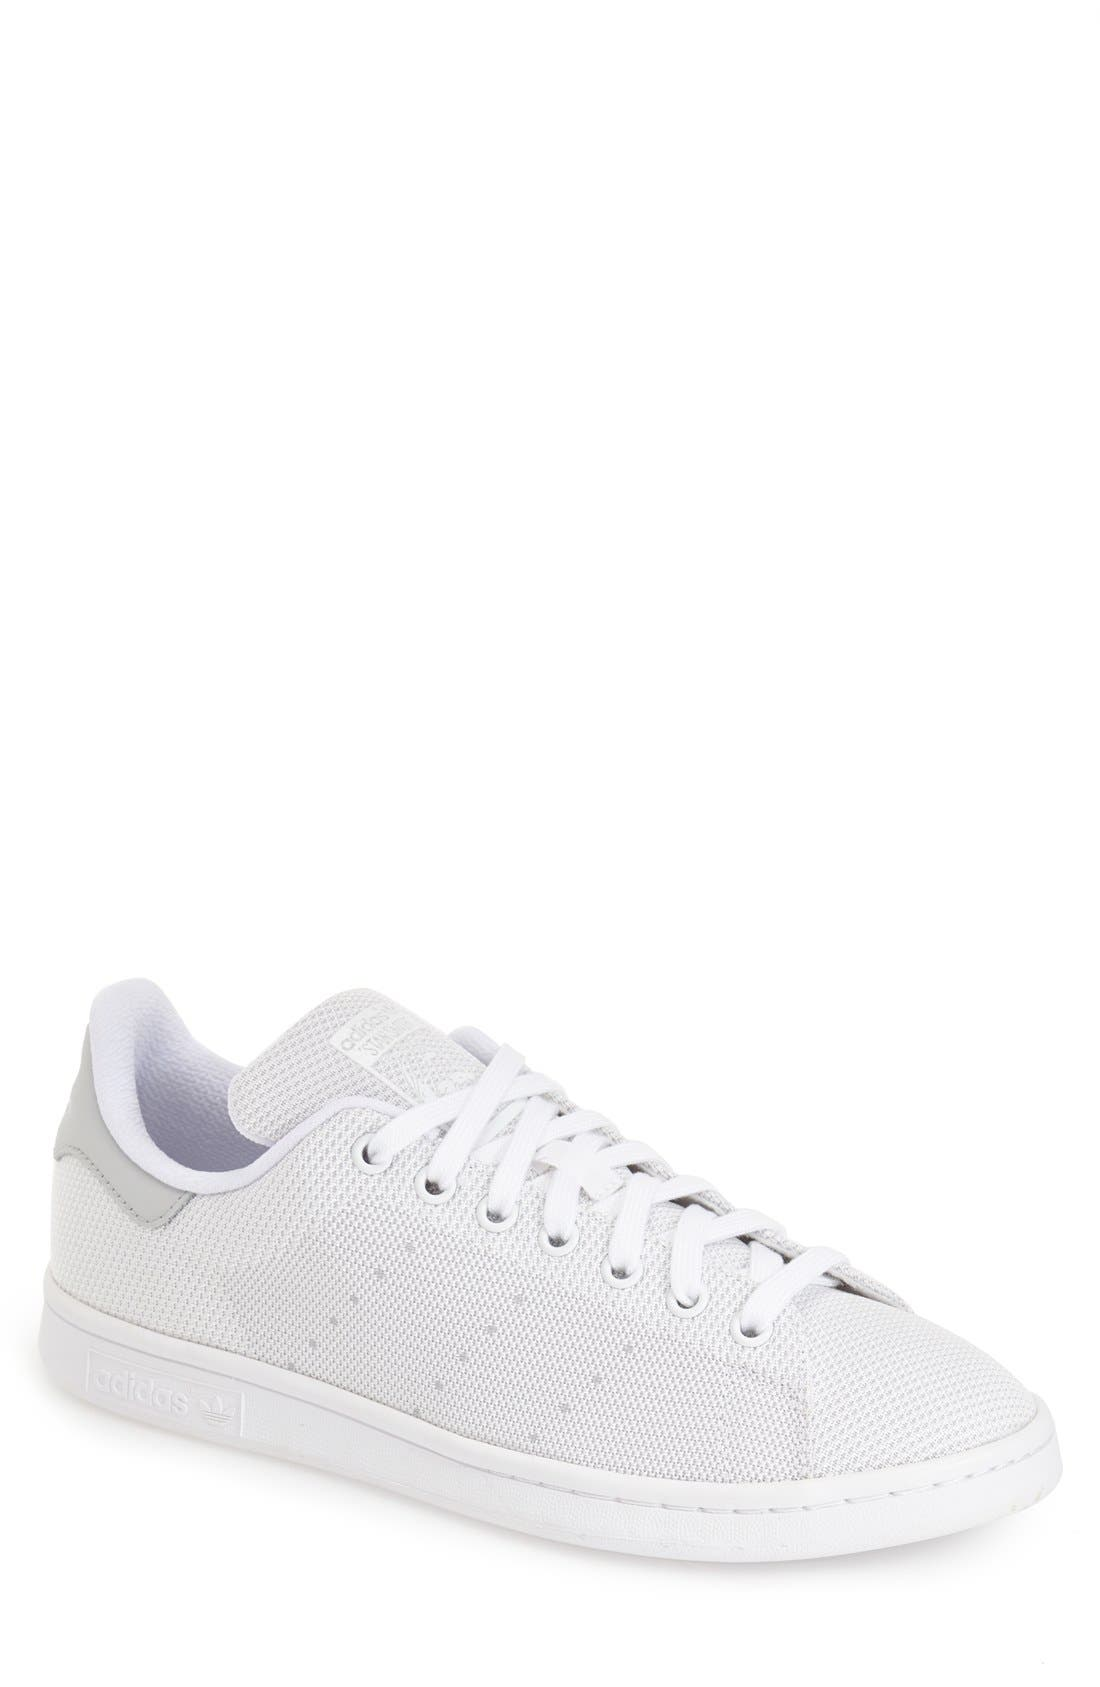 Main Image - adidas \u0027Stan Smith - Woven\u0027 Sneaker ...